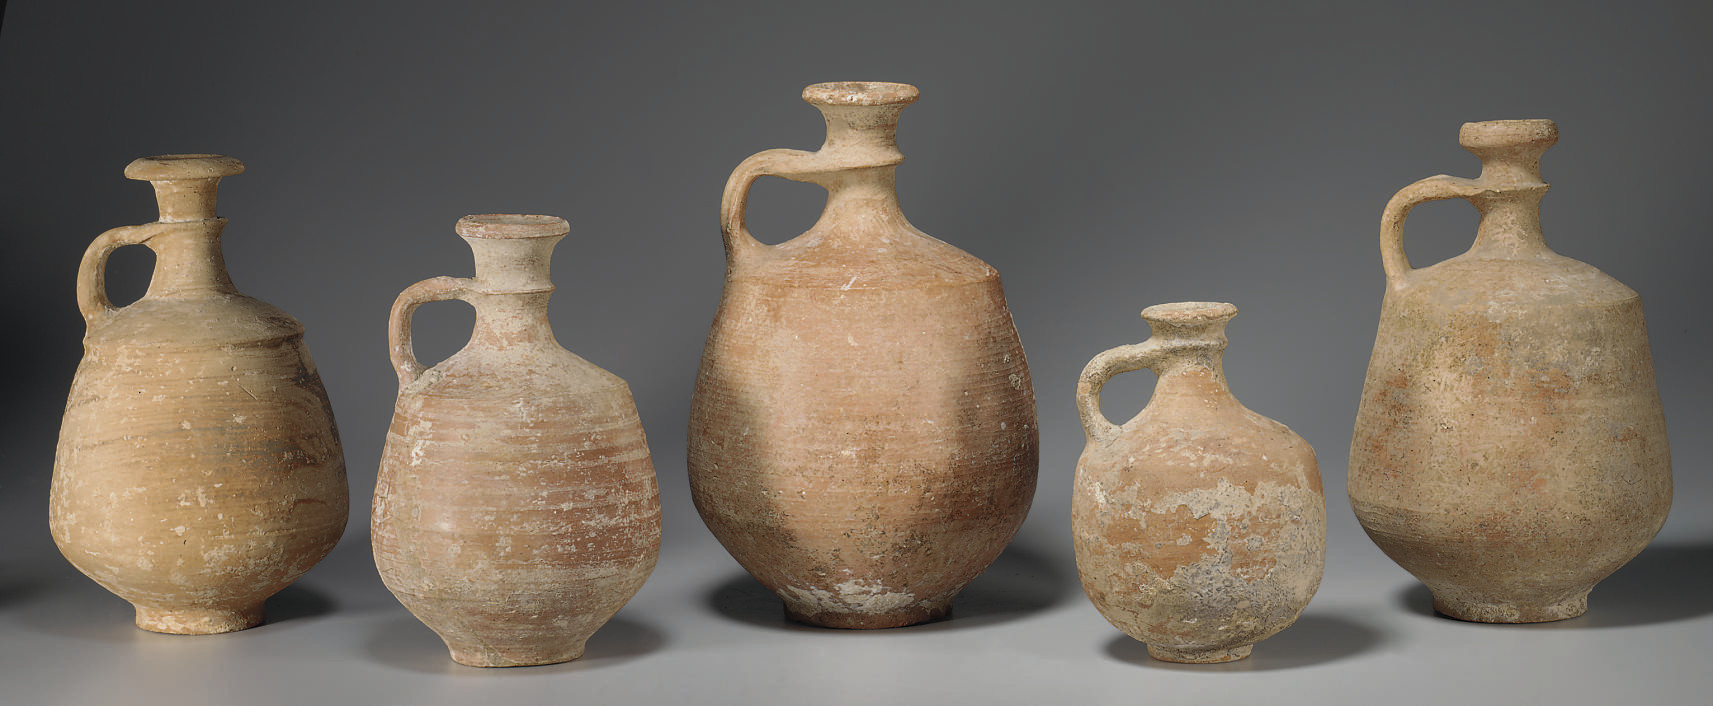 TWENTY ANCIENT POTTERY ITEMS